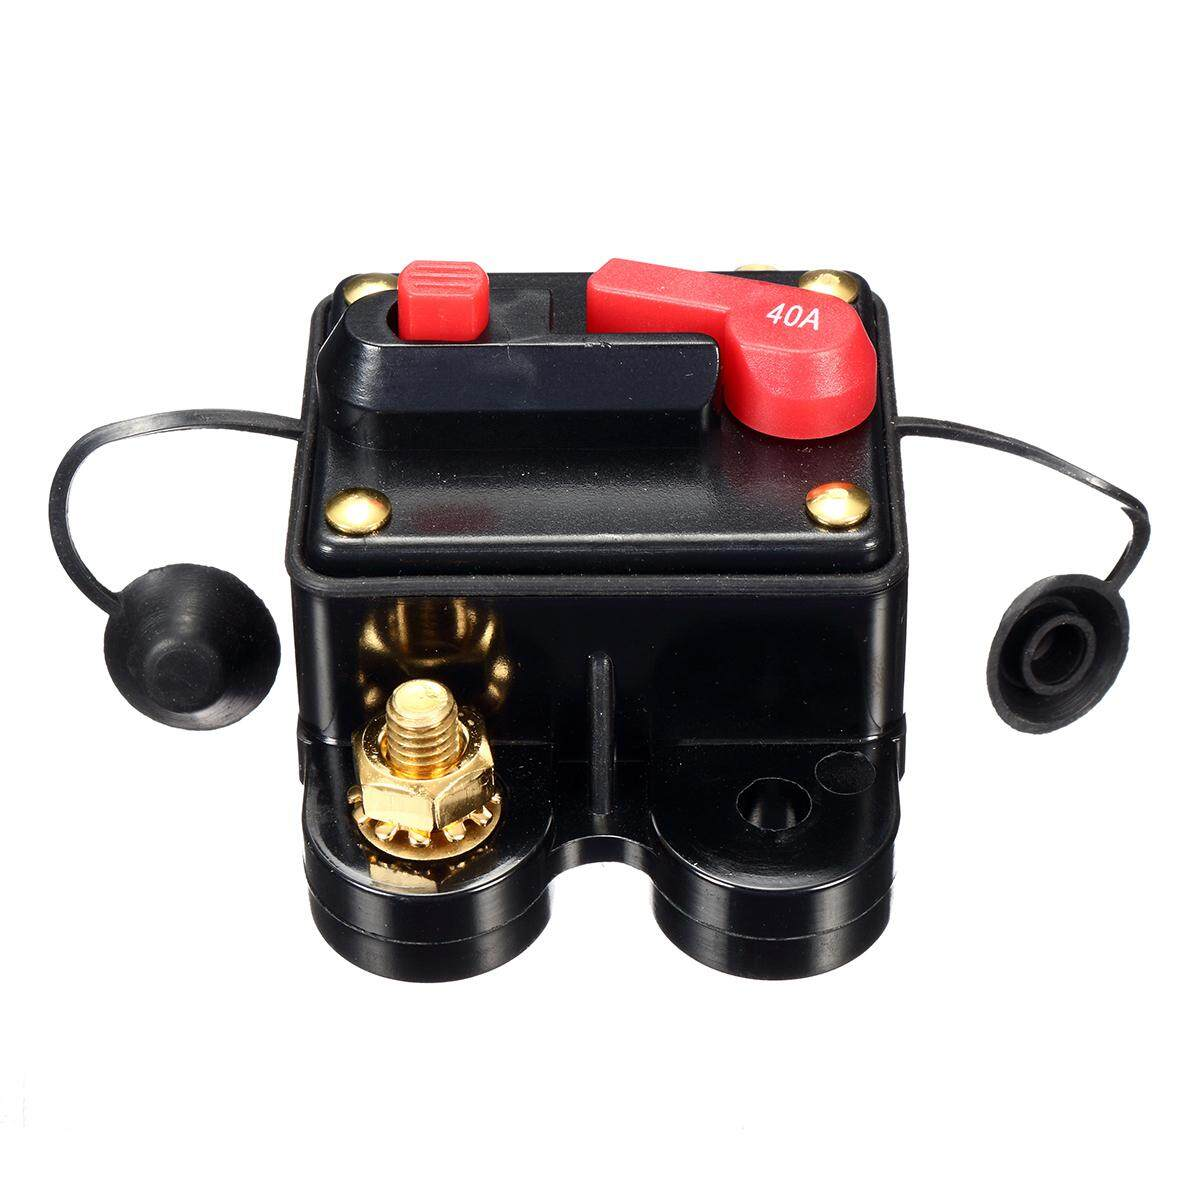 4pcs Cwaterproof 40 Amp Manual Reset Circuit Breaker 12v/24v Car Auto Boat Fuse By Glimmer.